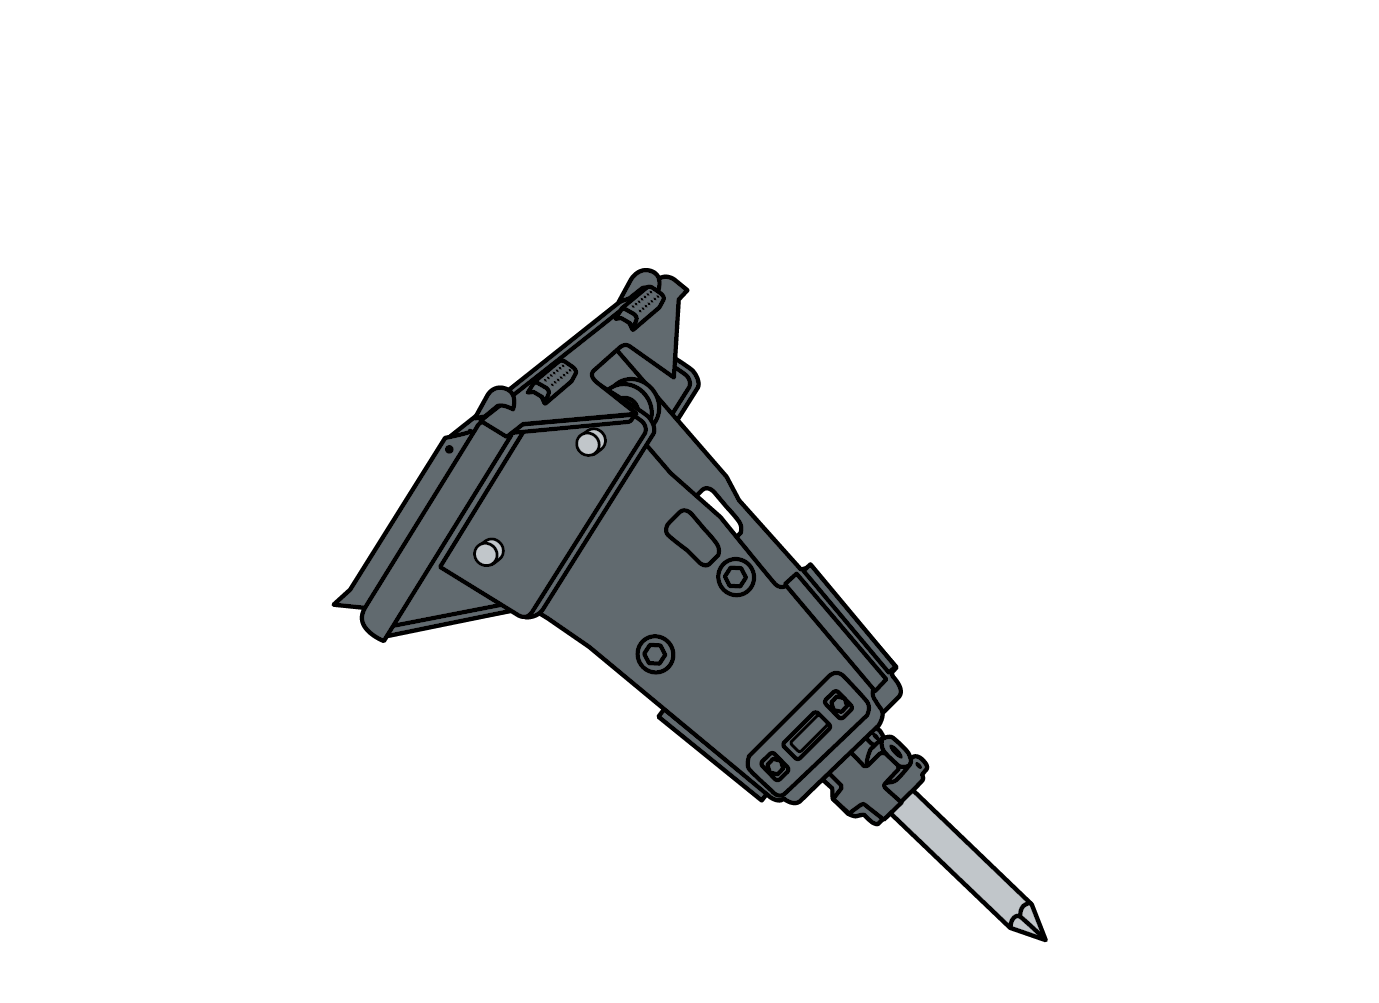 HYDRAULIC HAMMER illustration